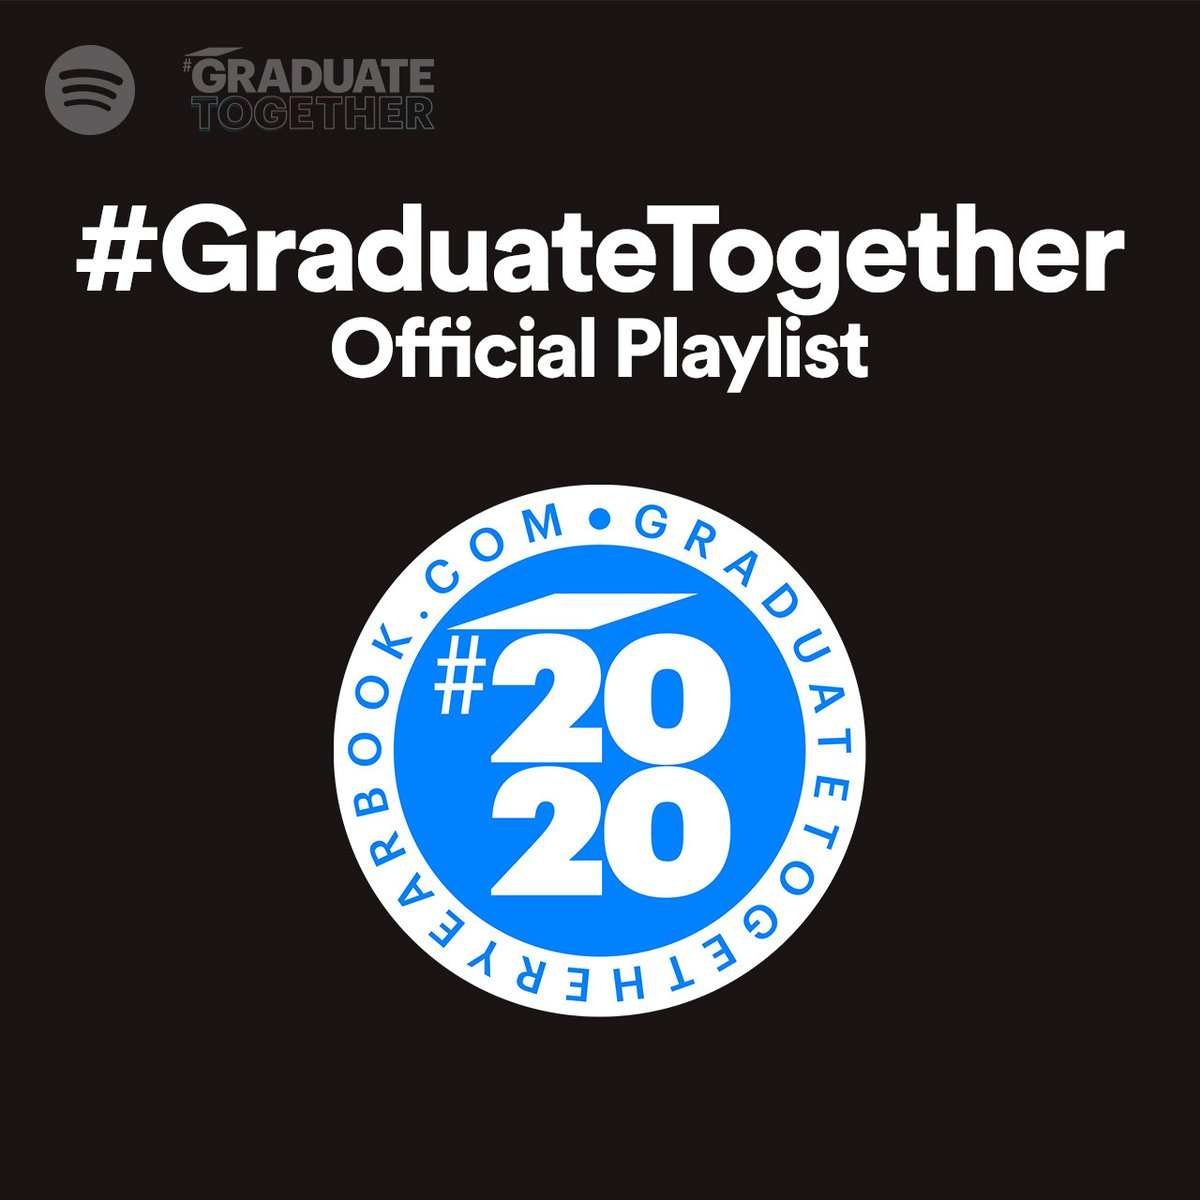 To the Class of 2020 - here is your soundtrack 🎓 Listen to the #GraduateTogether playlist to celebrate how far you've come. You did it. ▶️ spoti.fi/GraduateTogeth…